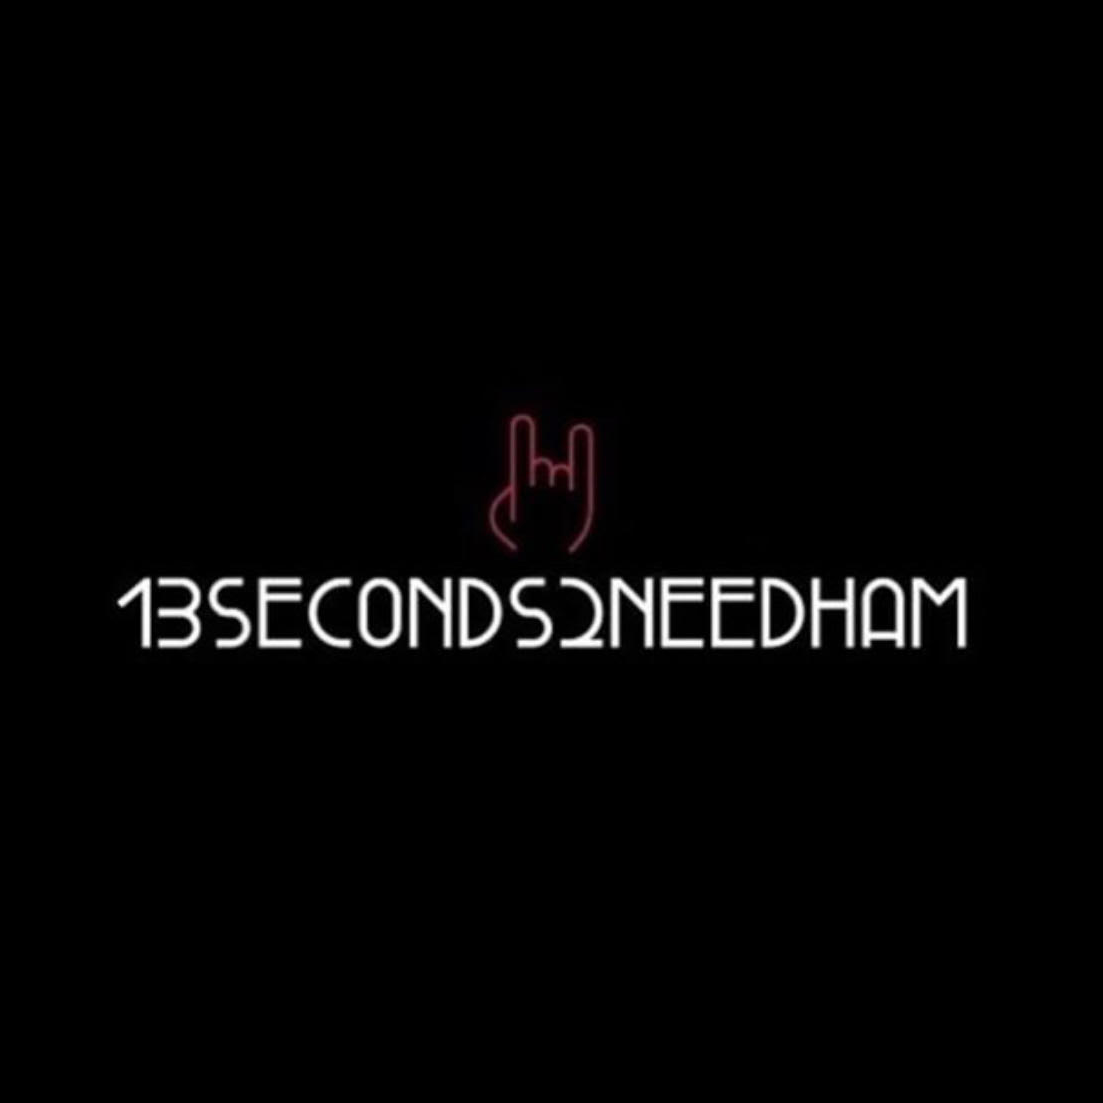 13Seconds2Needham (Live Jam)